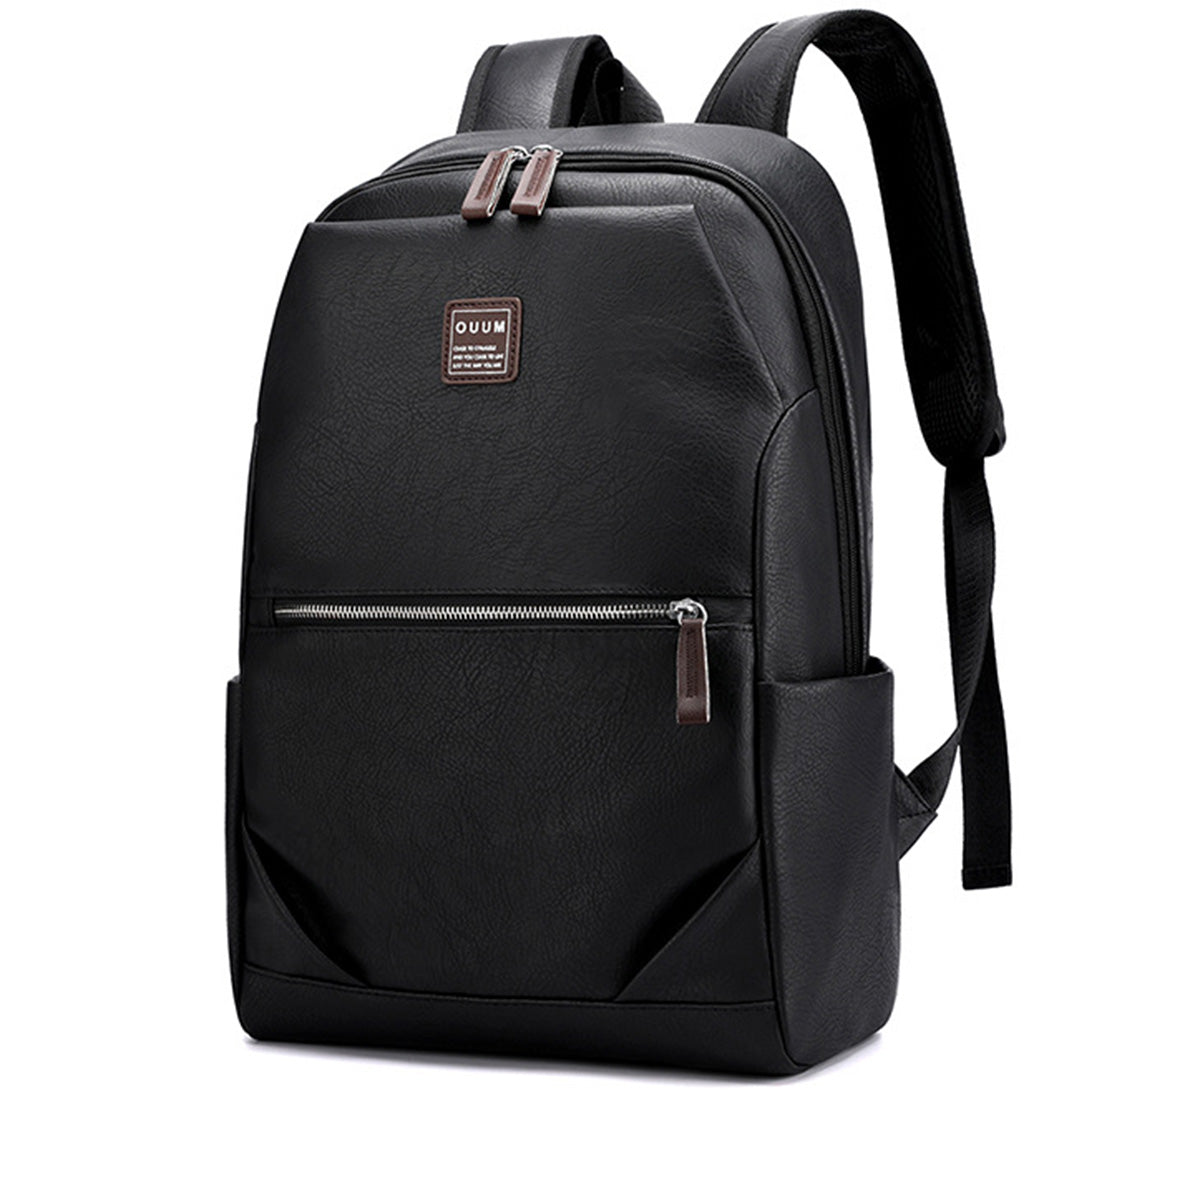 15.6 Inch Zipper PU Laptop Bag Business Travel Portable Men's Briefcases Messenger Documents Handbags